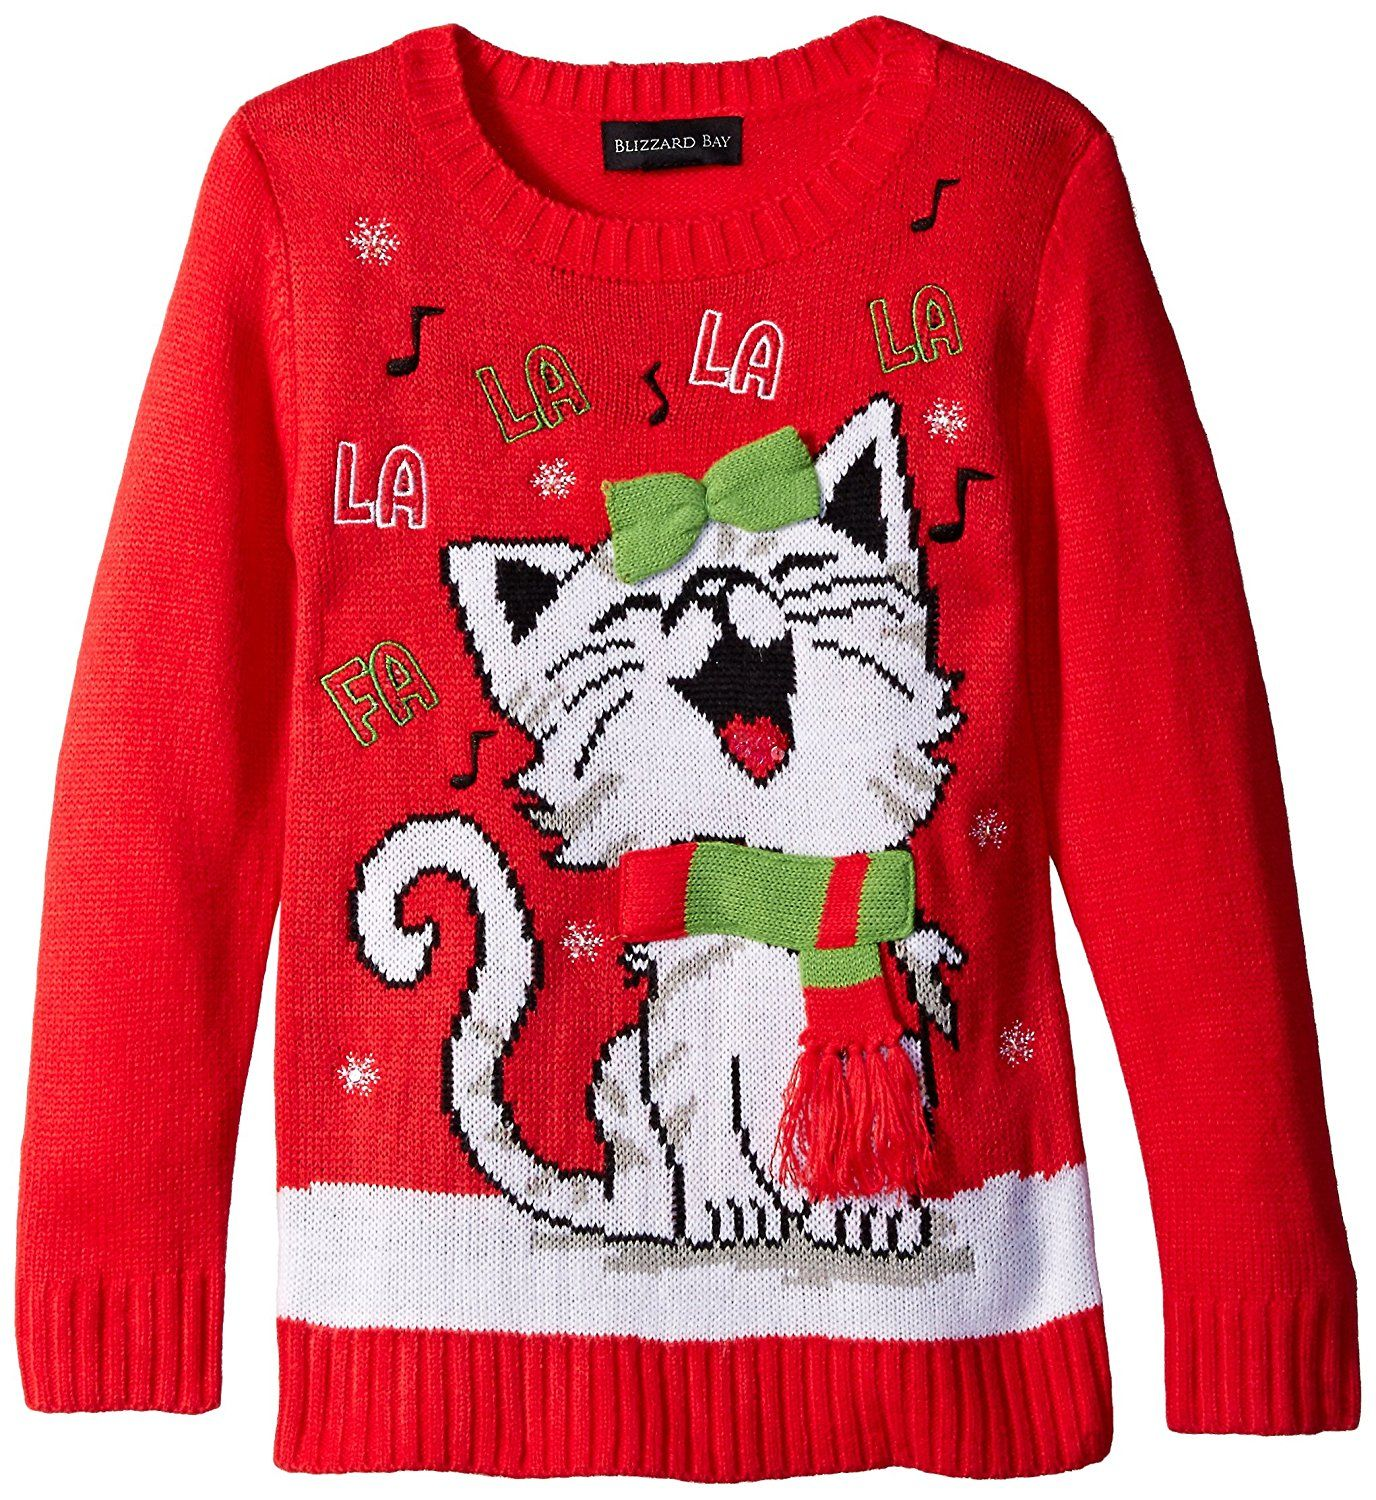 Amazon.com: Blizzard Bay Big Girls\' Happy Kitty Christmas Sweater ...